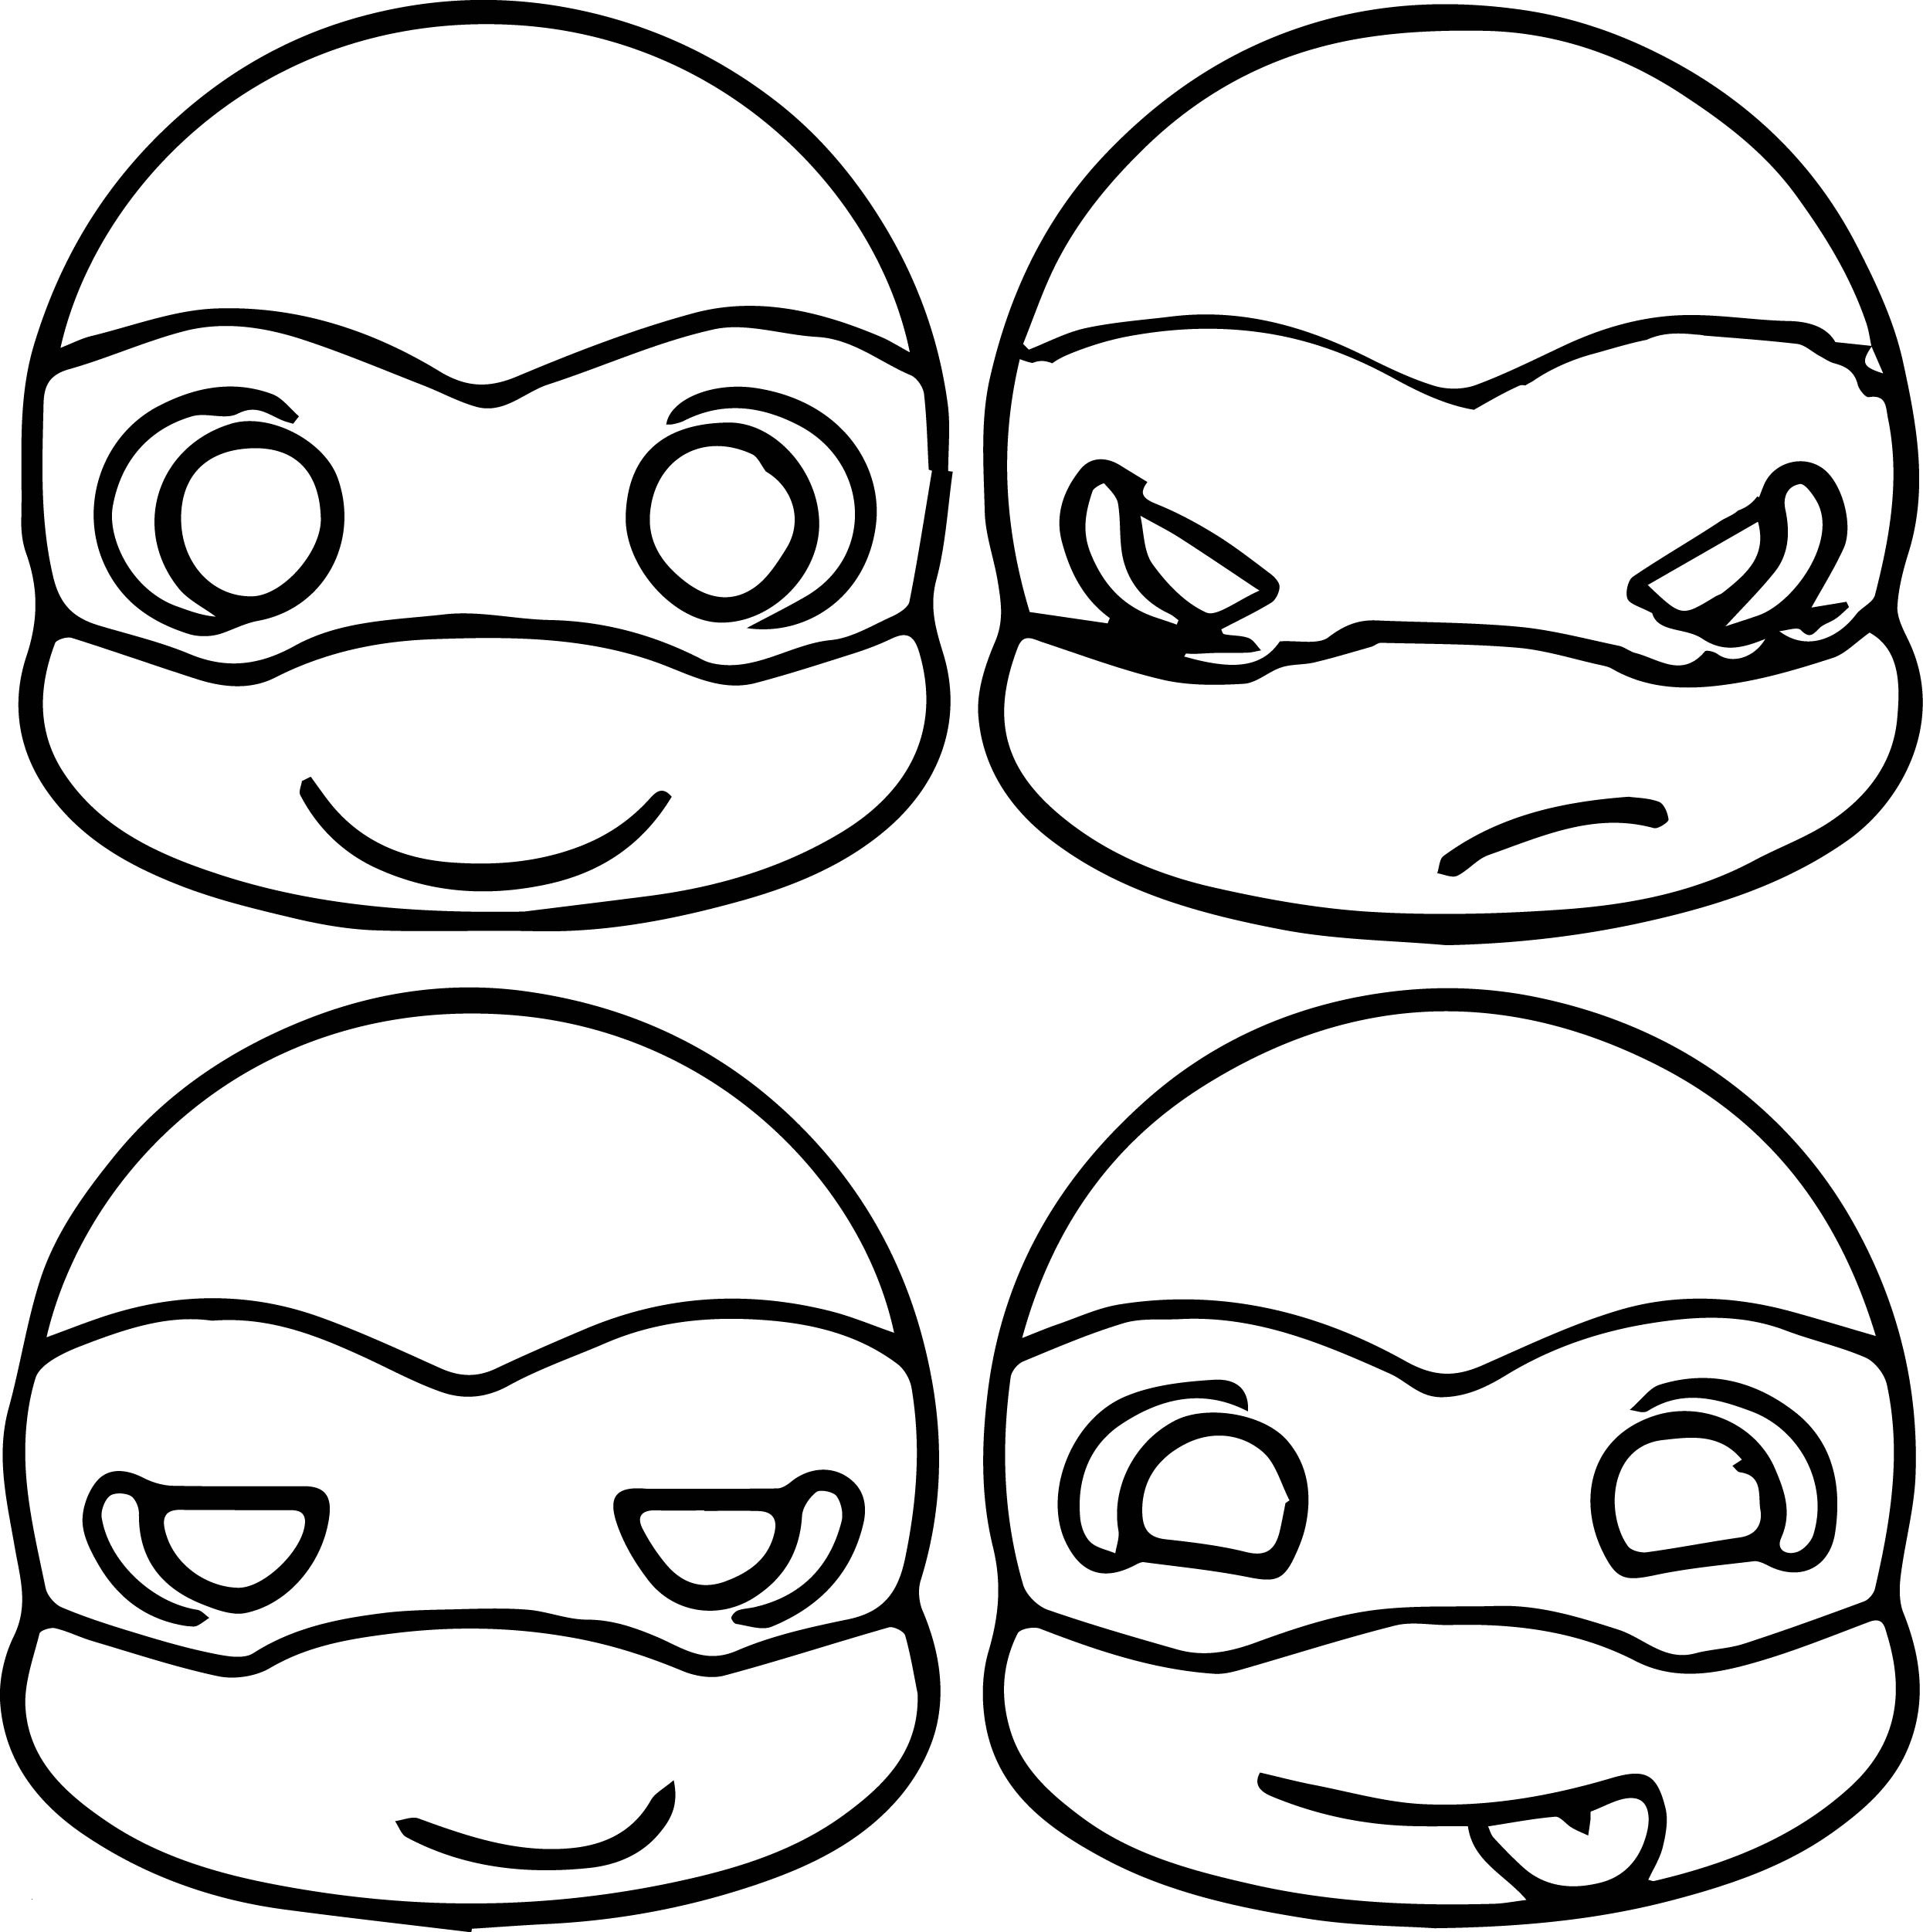 Nickelodeon Teenage Mutant Ninja Turtles Coloring Pages ...